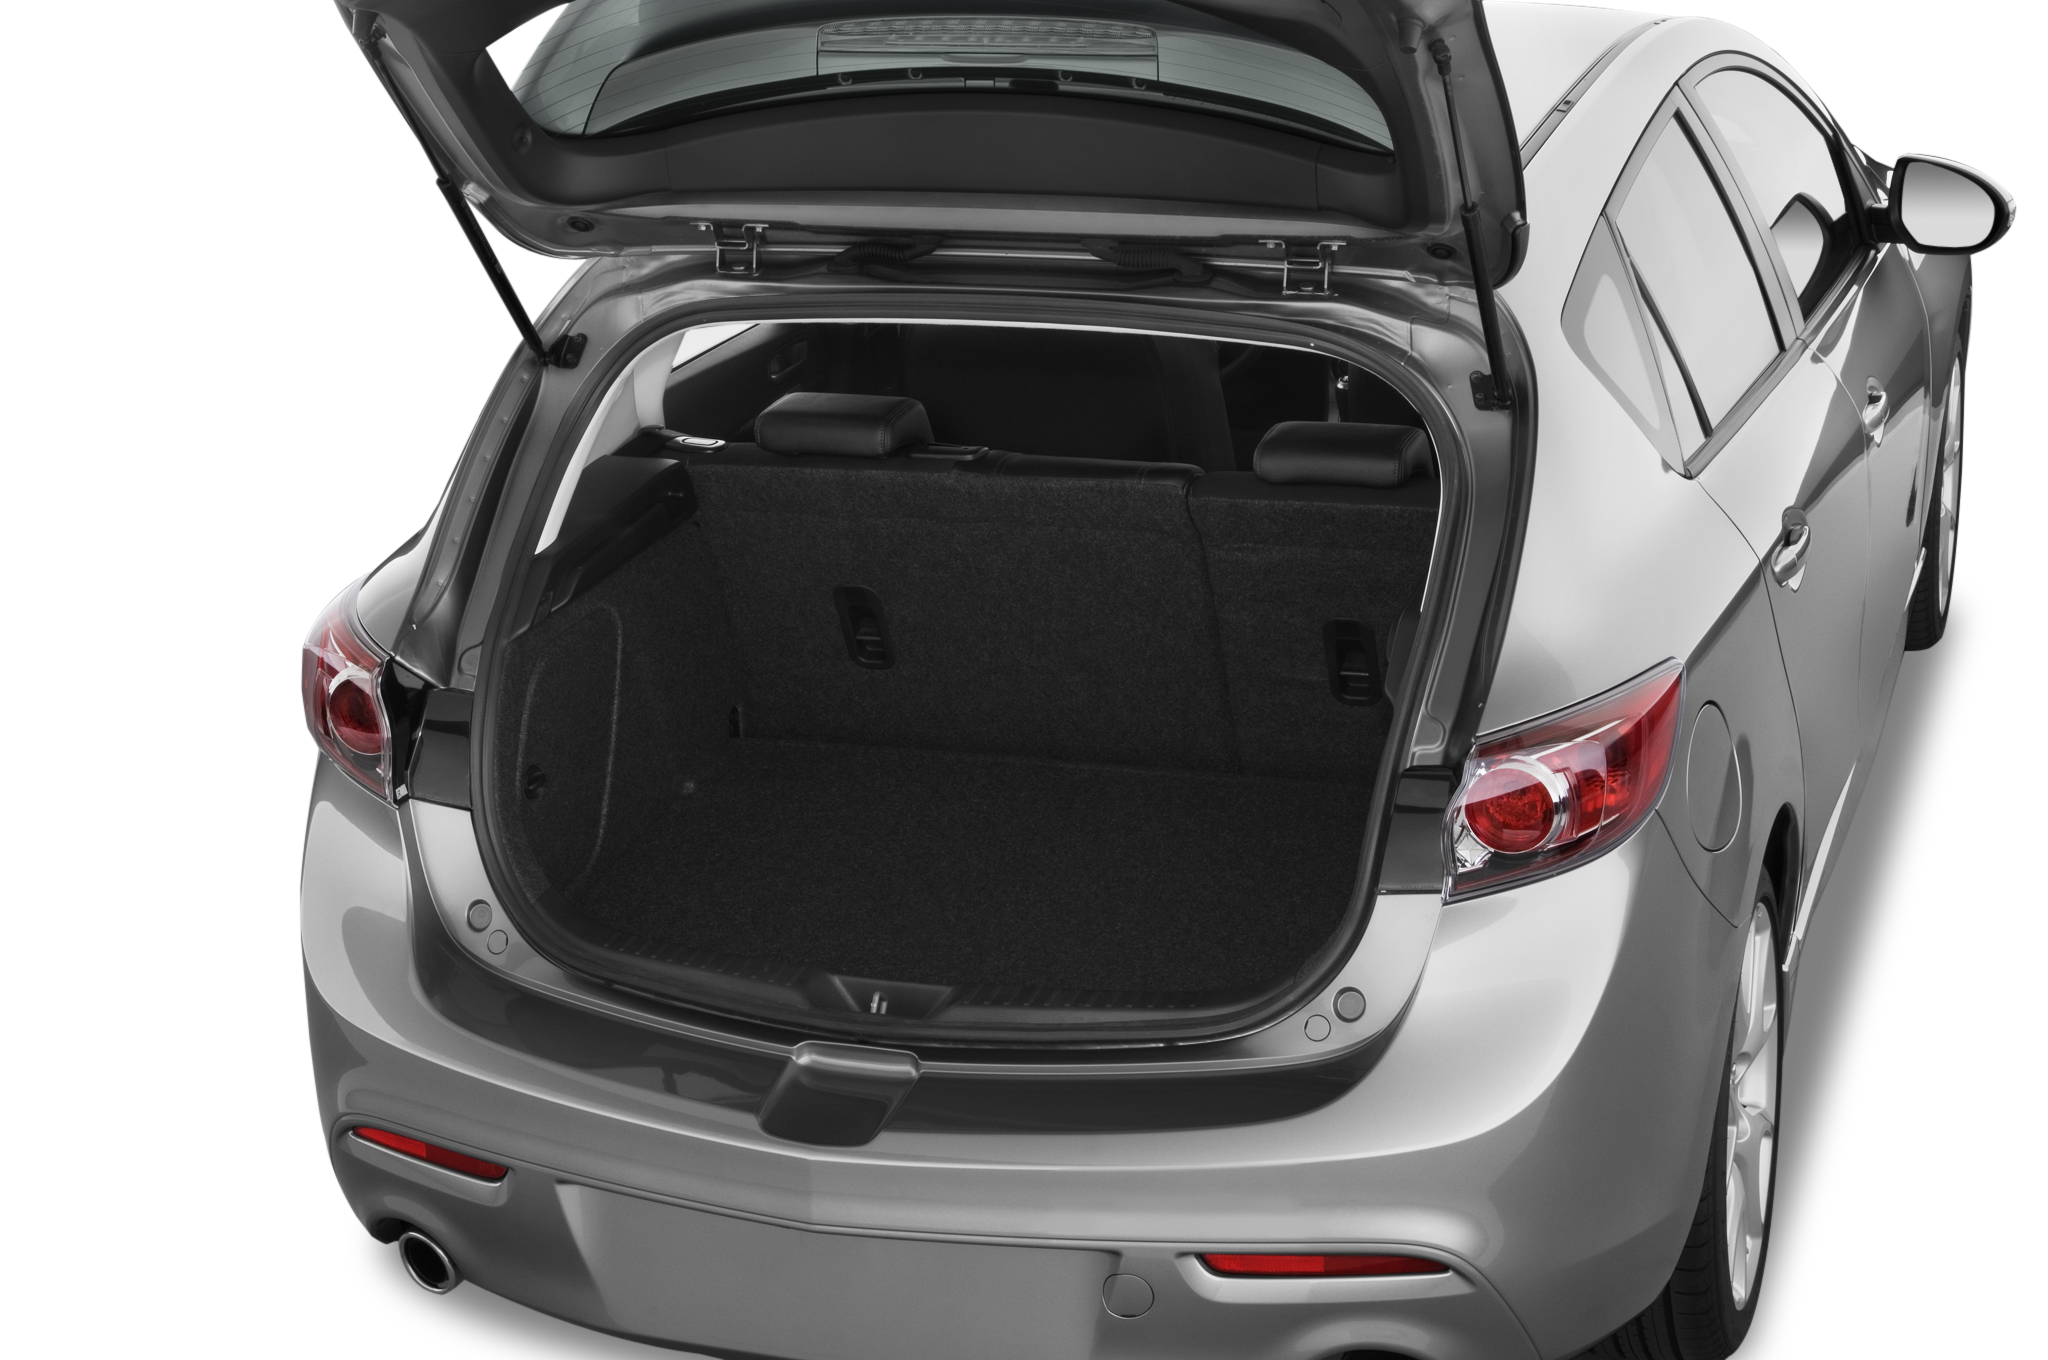 2012 Mazda3 S Grand Touring Sedan Editors Notebook Automobile